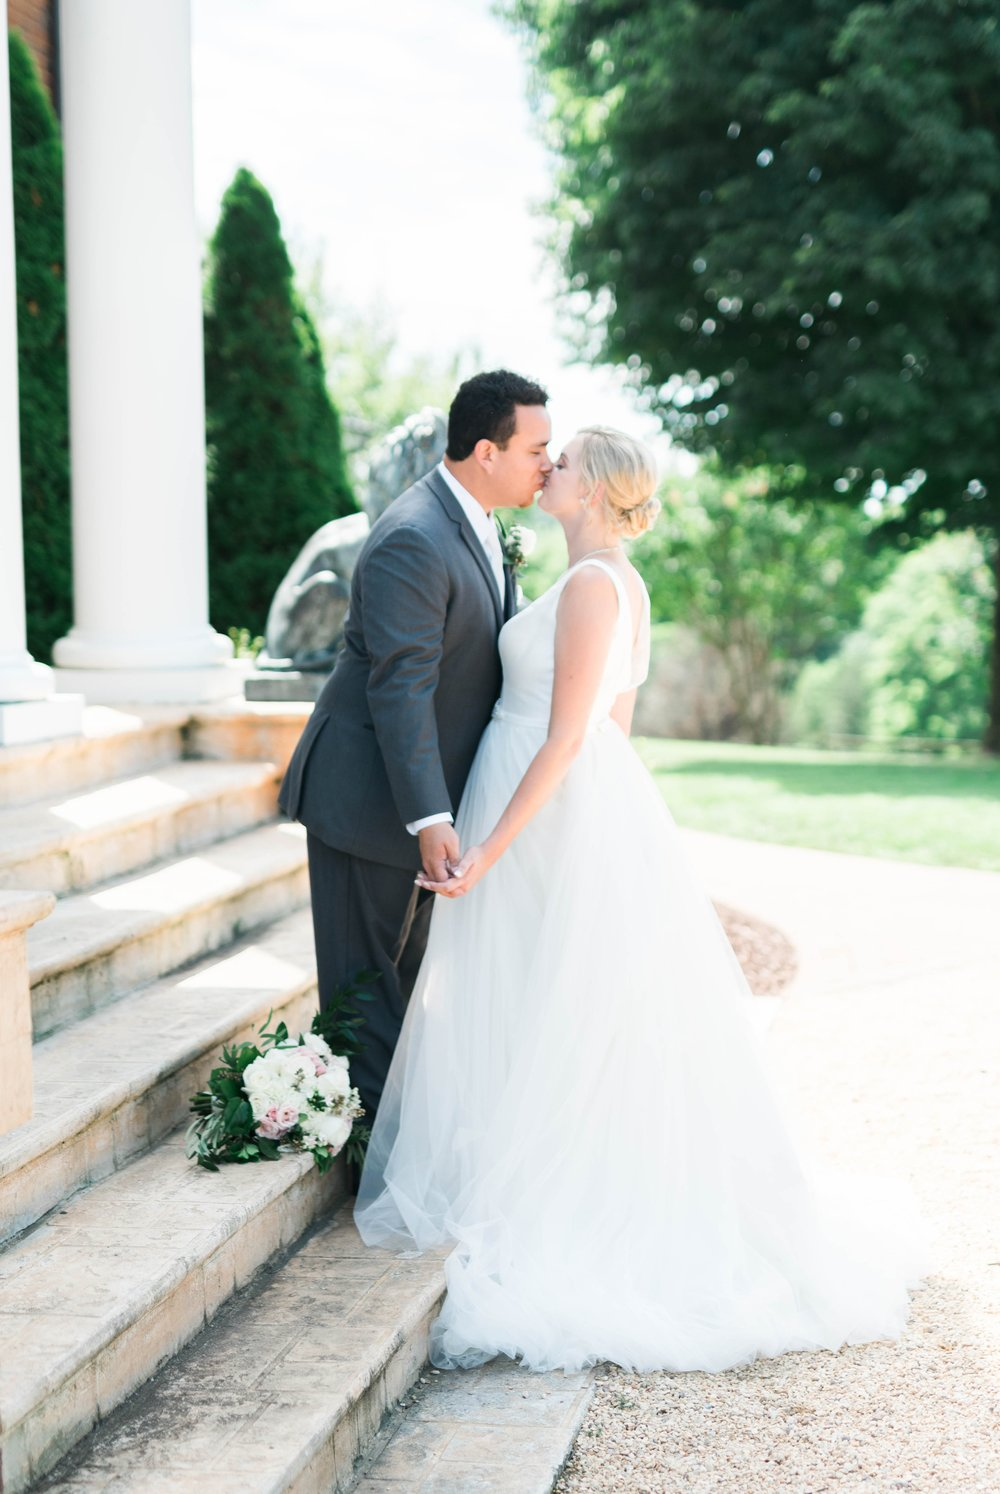 westmanorestate_entwinedevents_lynchburgweddingphotographer_Virginiaweddingphotographer_kateyam 5.jpg